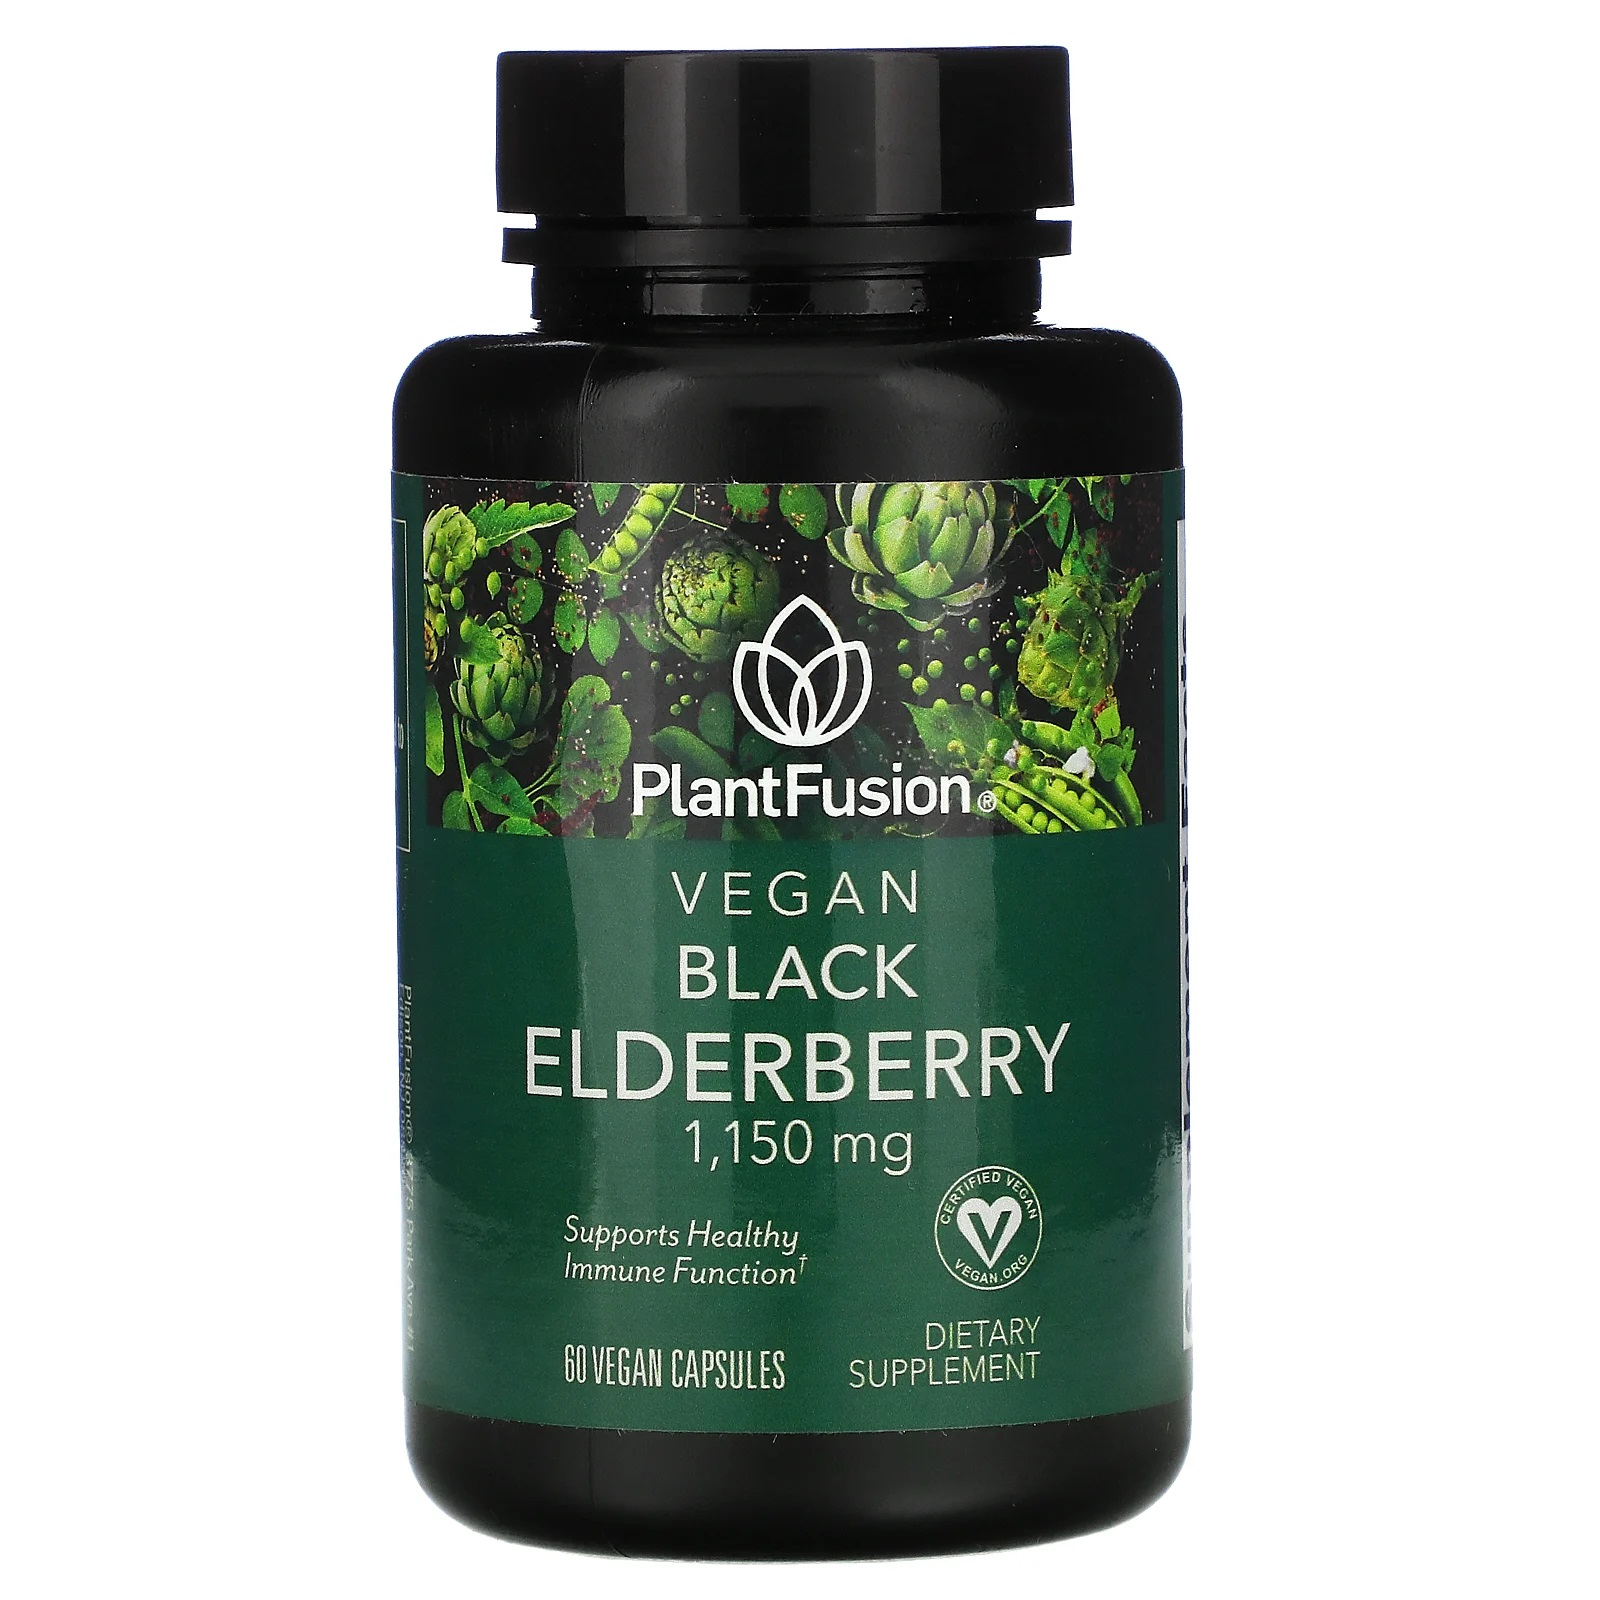 PlantFusion, Vegan Black Elderberry, 1,150 mg, 60 Vegan Capsules